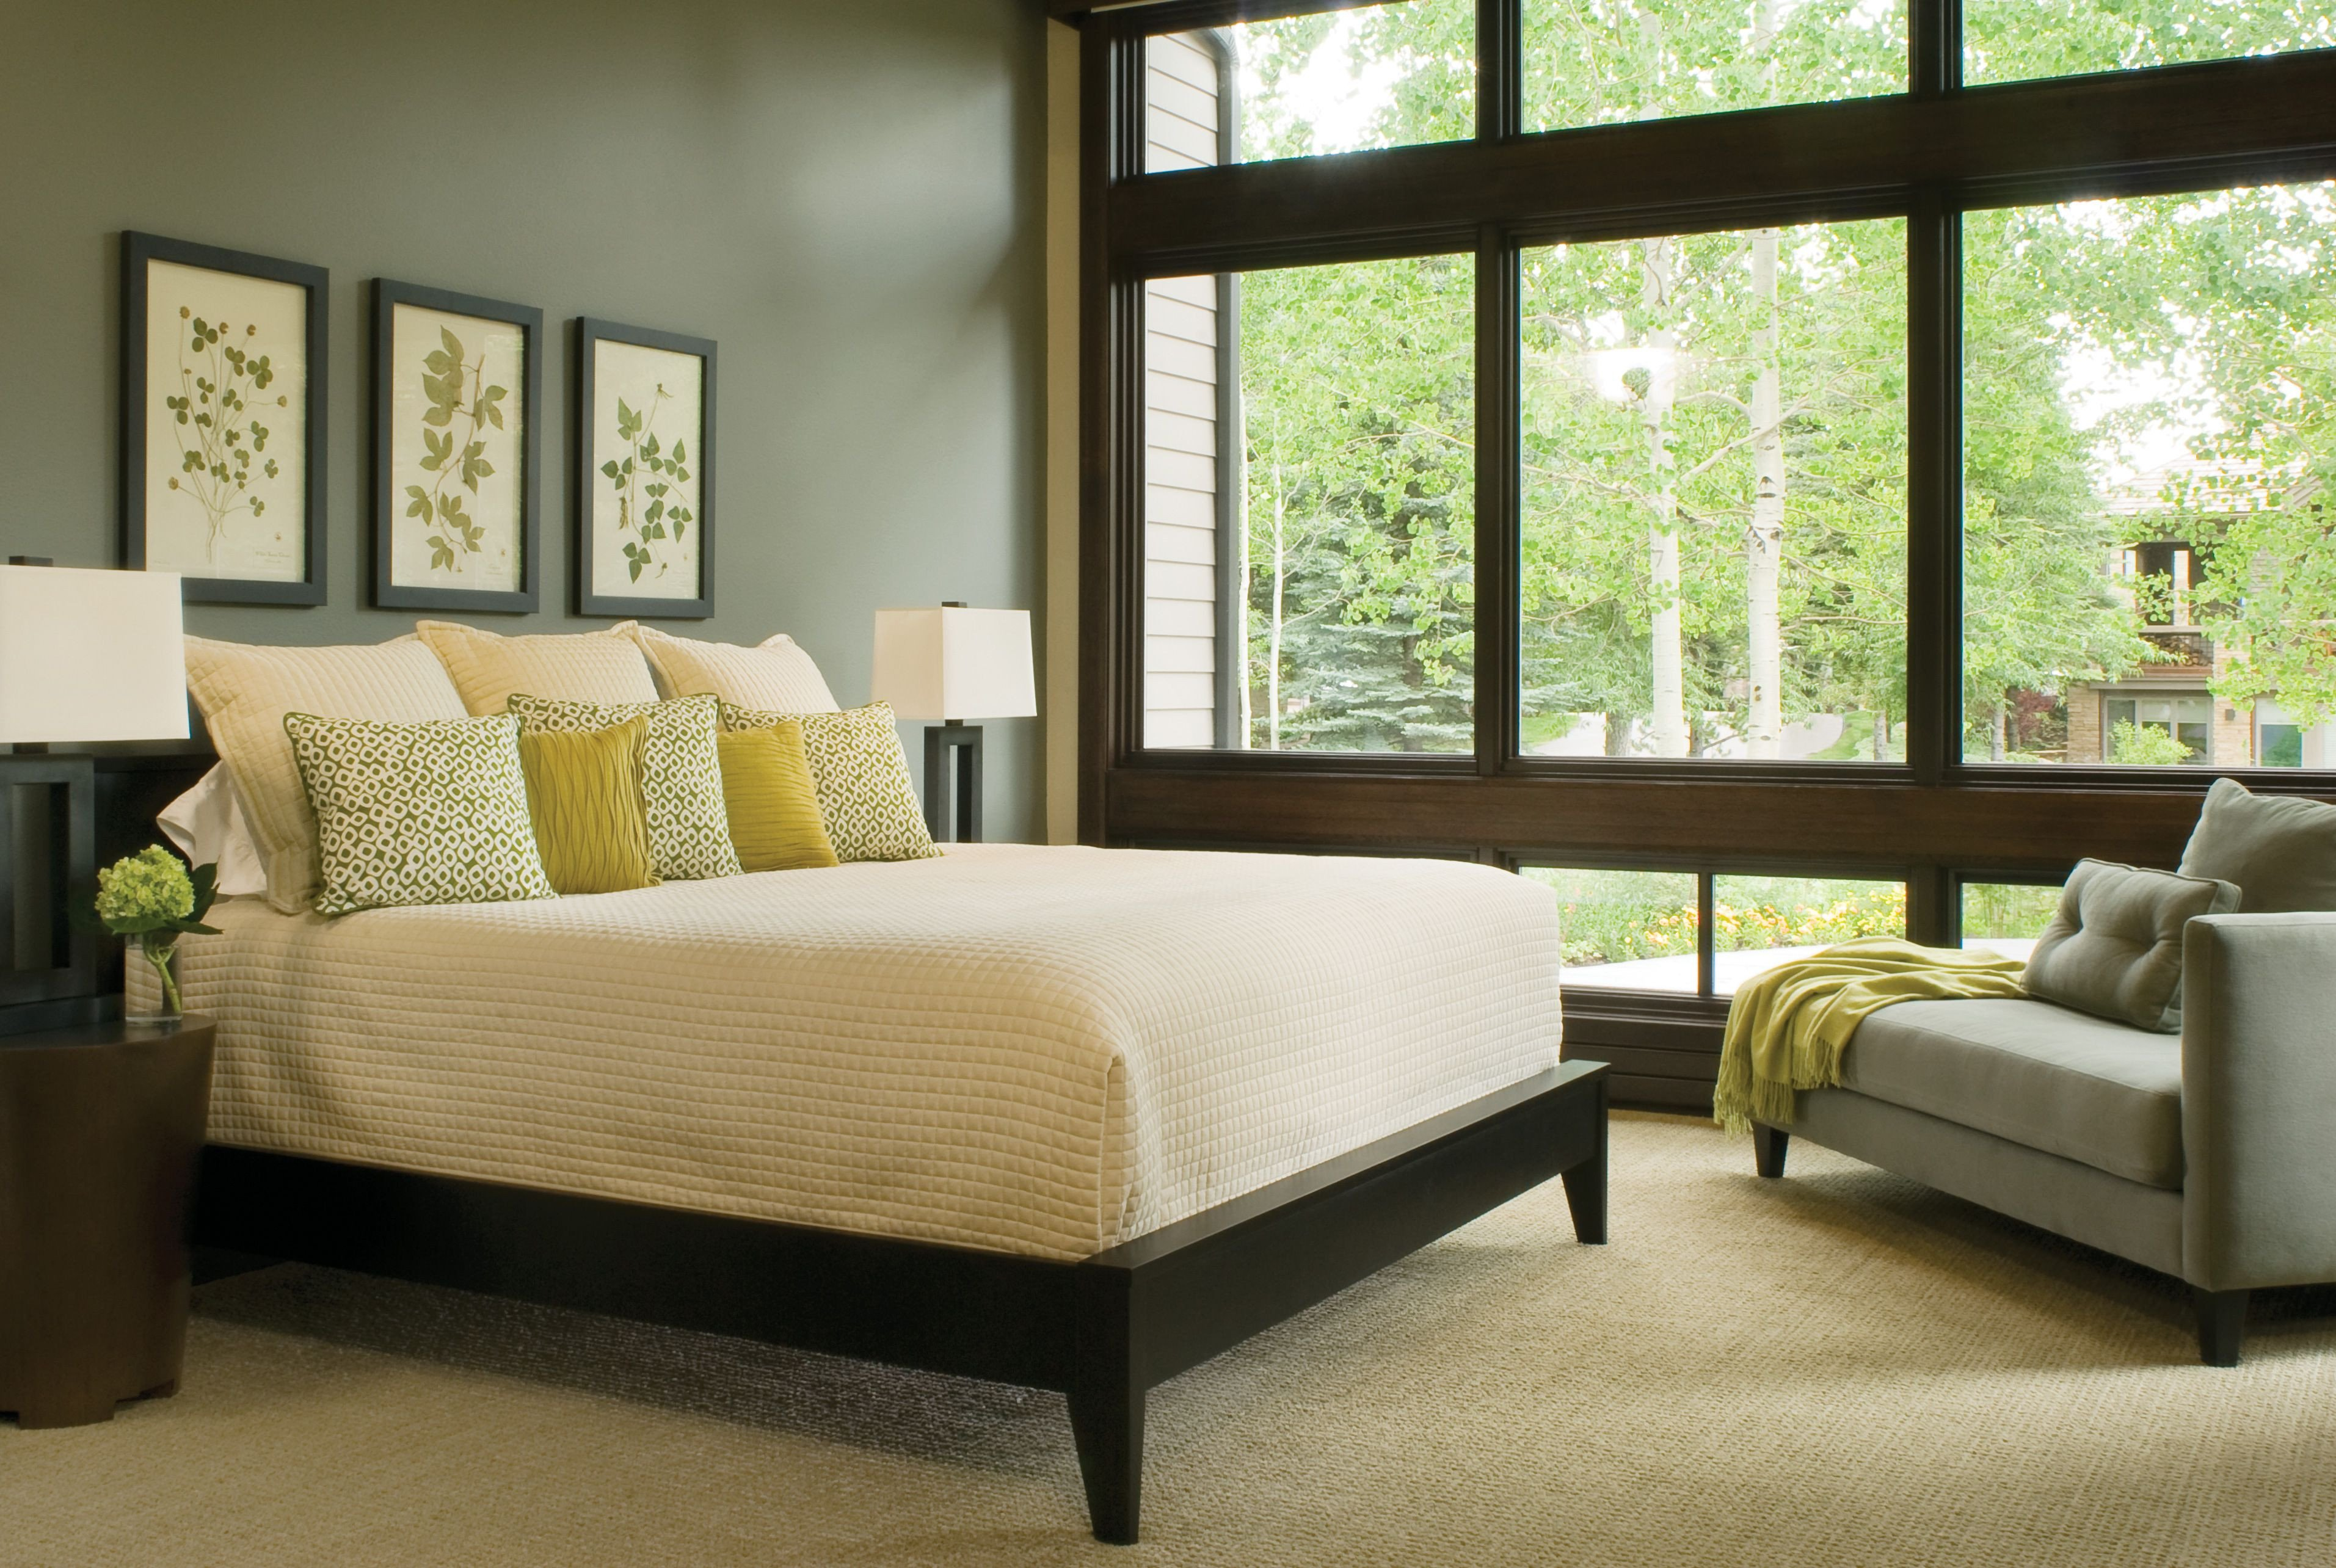 Green and Brown Bedroom New Pleasant Bedroom Nuance In Neutral Paint Color Idea with